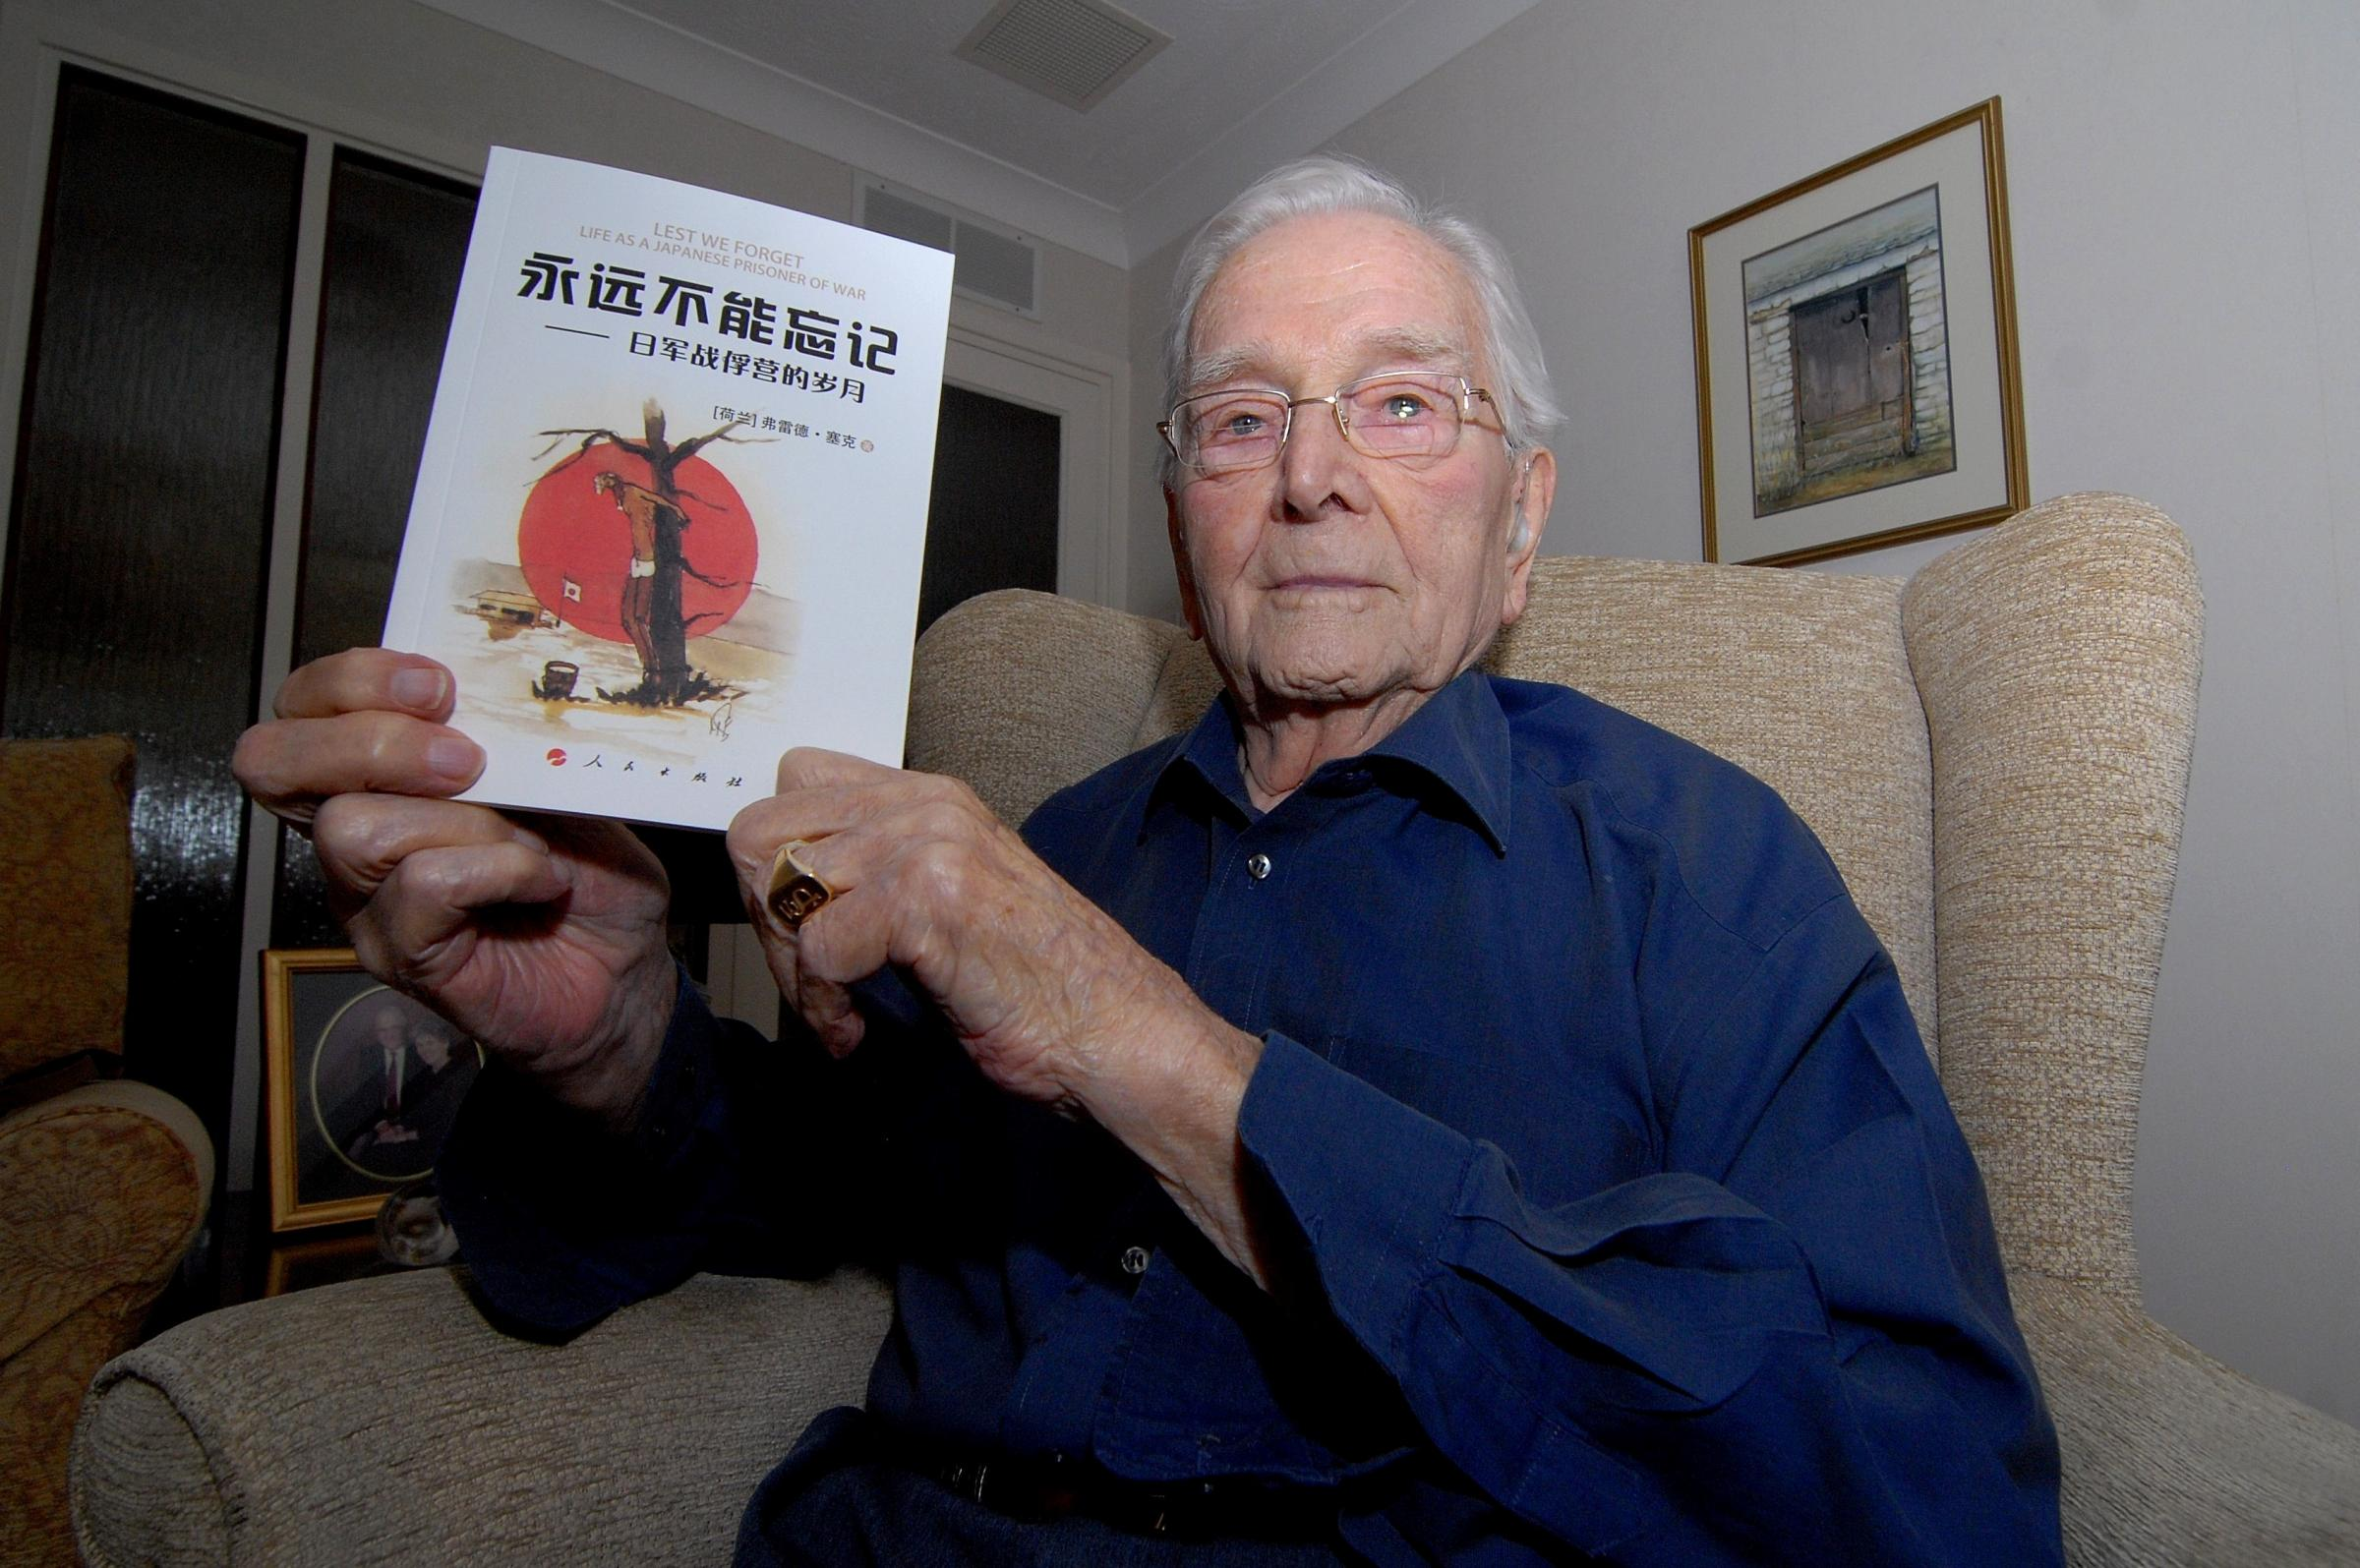 Worcester veteran publishes book in China about being a Japanese prisoner of war